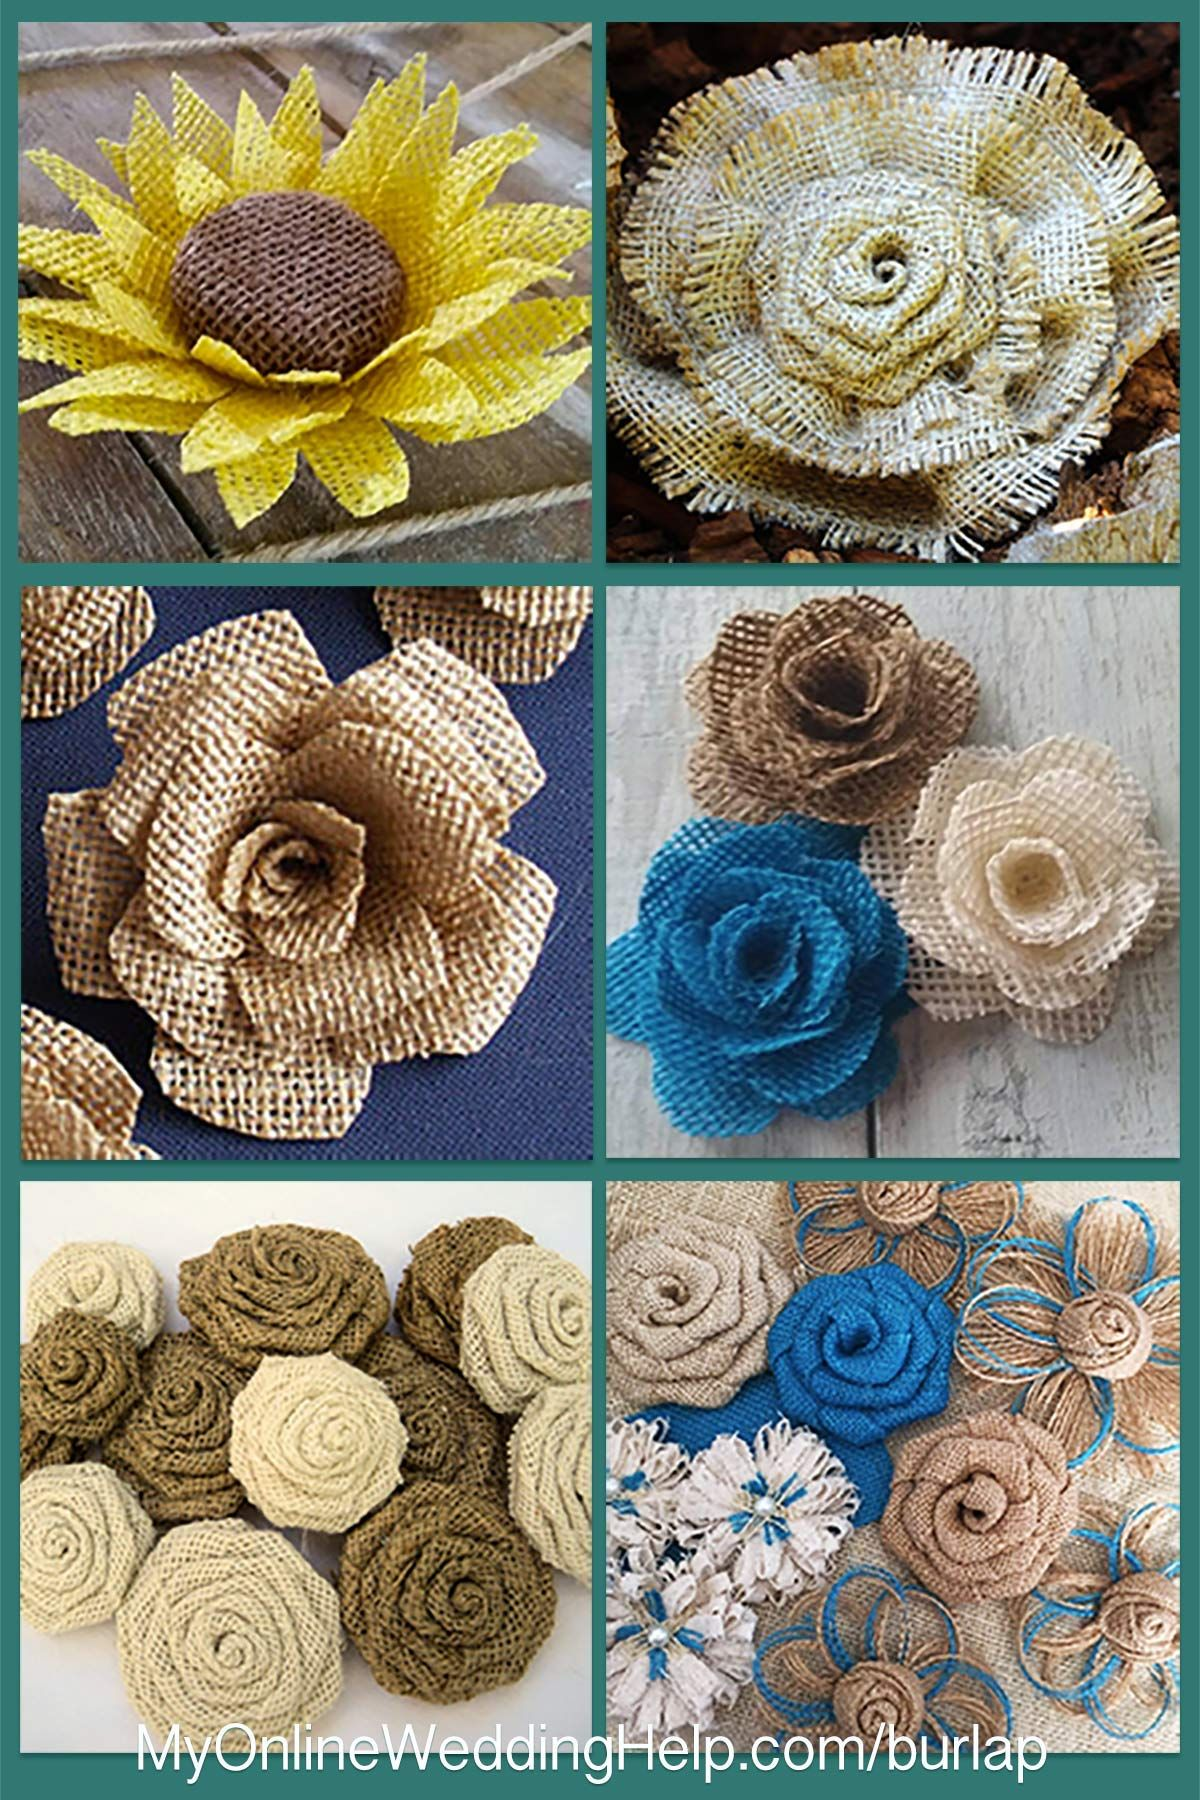 How to make rustic burlap flowers tutorial and video pinterest if you do not have time or know how to do it yourself an izmirmasajfo